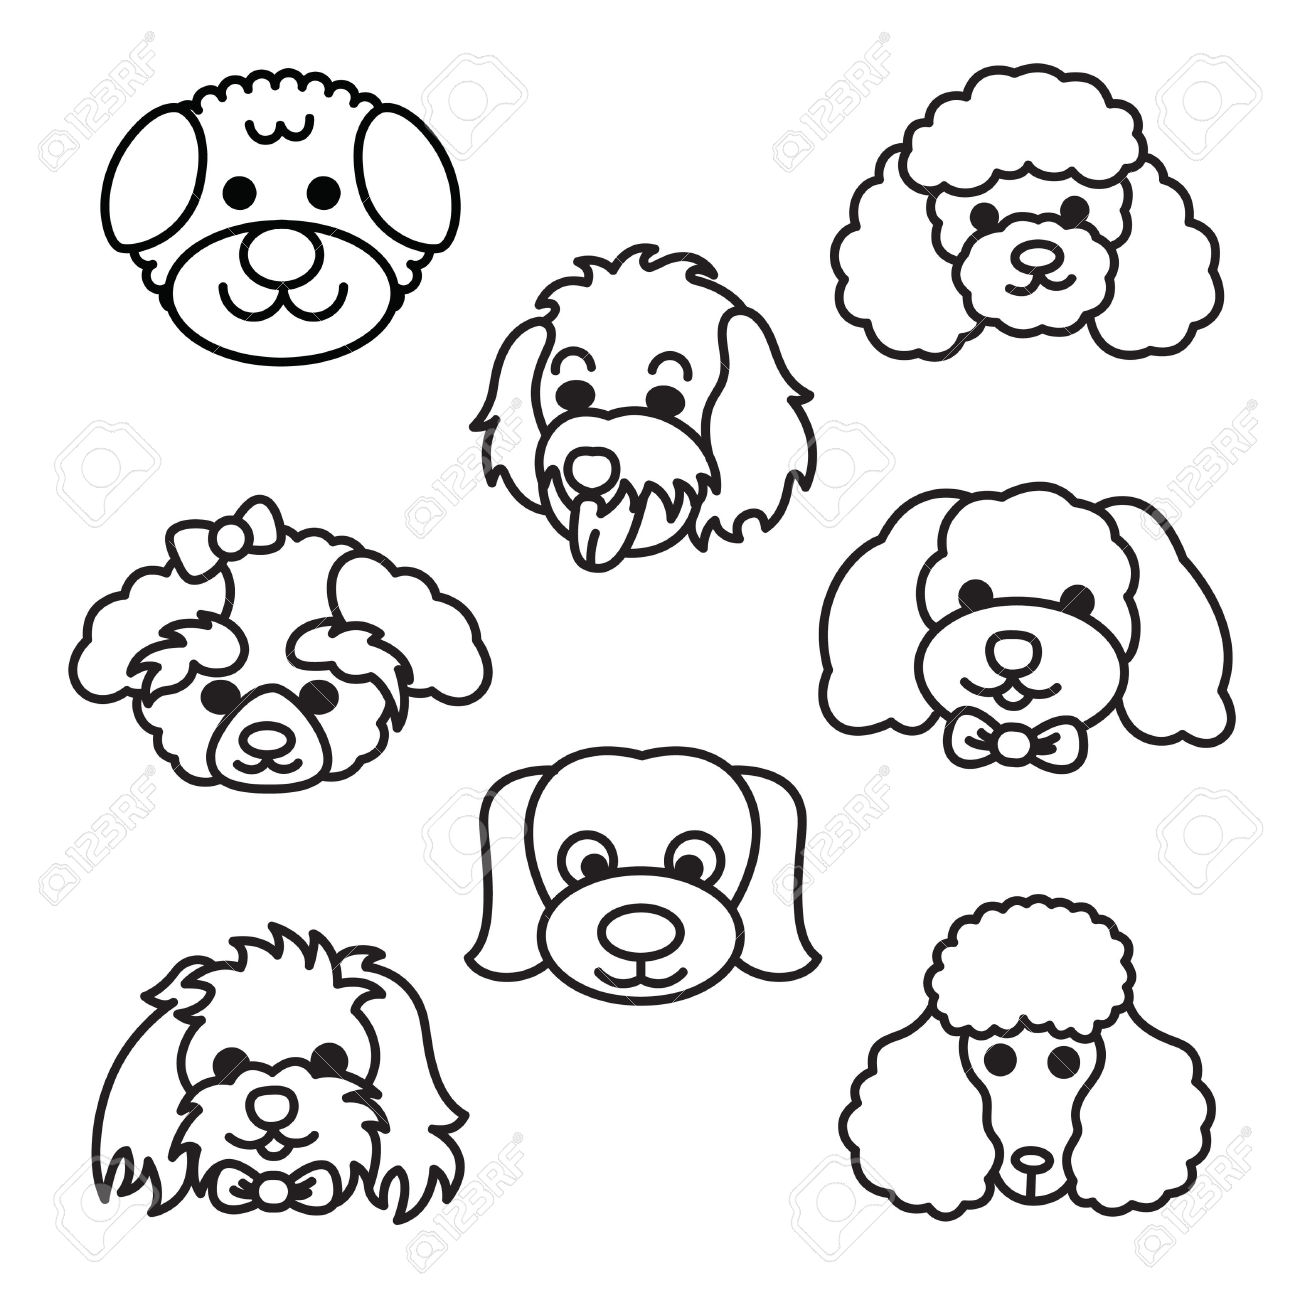 Cute poodle face clipart black and white banner transparent stock Poodle Cartoon Drawing at PaintingValley.com | Explore ... banner transparent stock